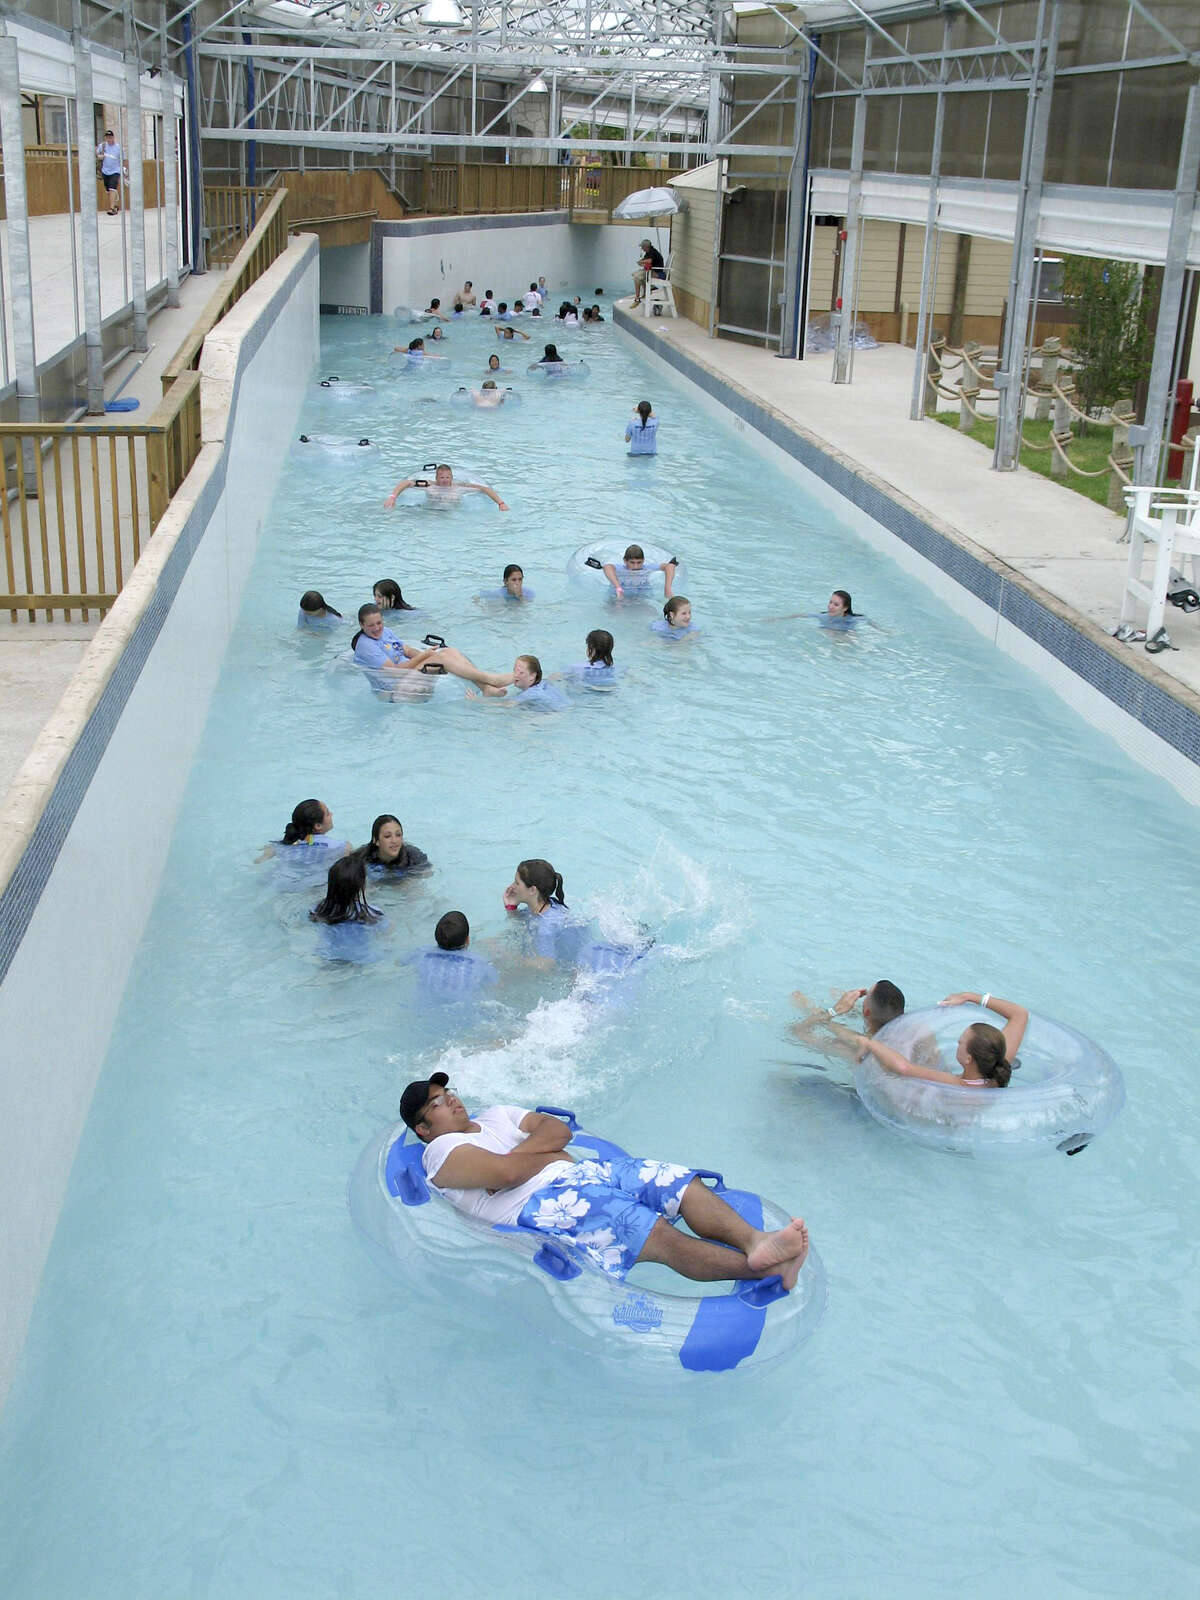 The gentle flows are a family-friendly liquid merry-go-round, and park-goers can float through Wasserfest and Surfenburg for as long as they want at Schlitterbahn Galveston Island Waterpark in Galveston, Texas. (Mary Ellen Botter/Dallas Morning News/MCT)